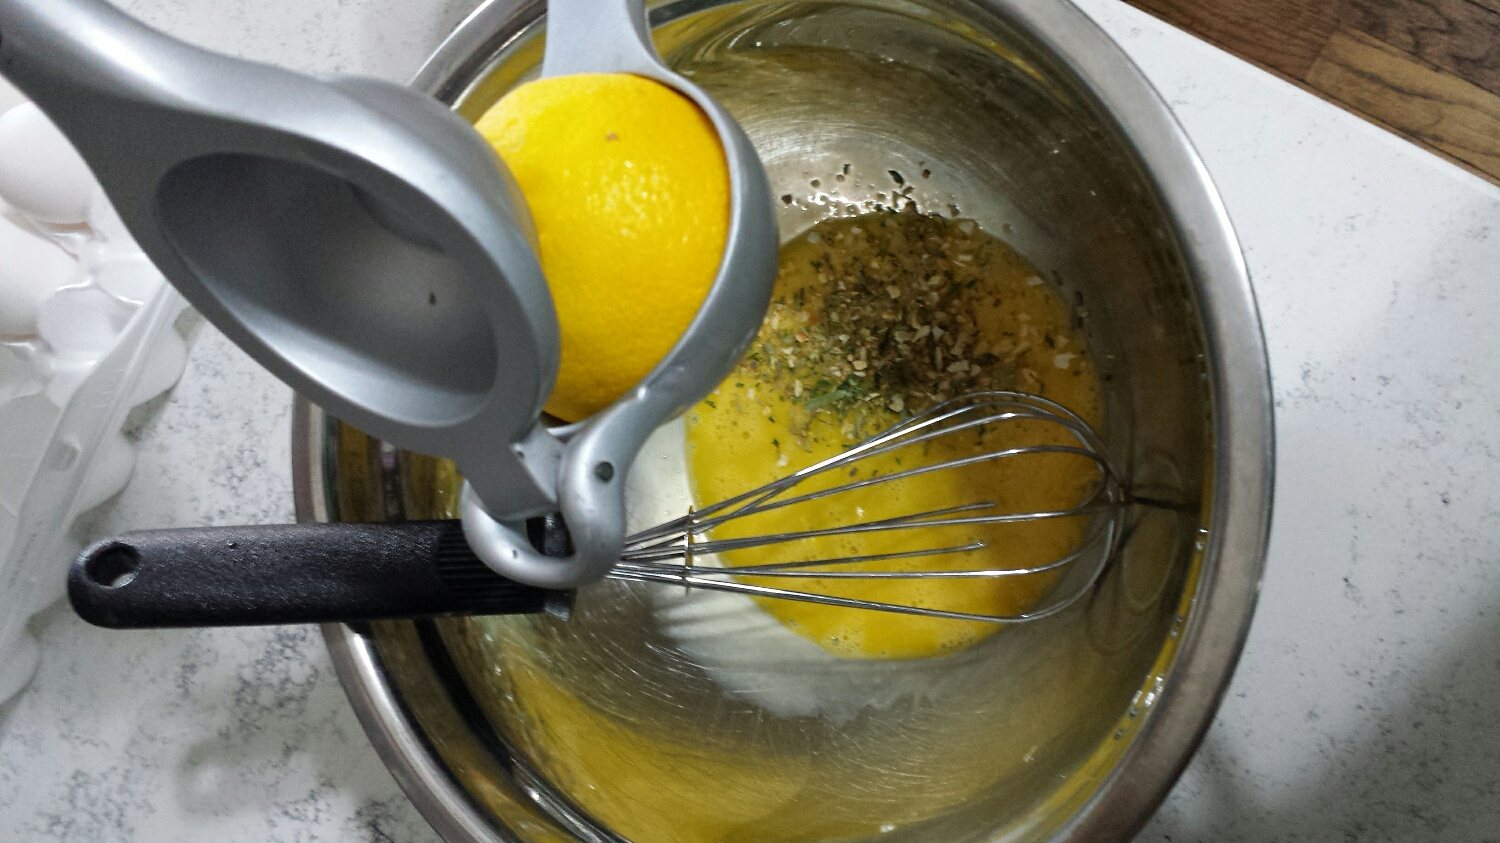 Place two egg yolks in a bowl. Add 1 tsp of South of France and the juice of half a lemon. Whisk until the eggs are doubled in size and slightly frothy.